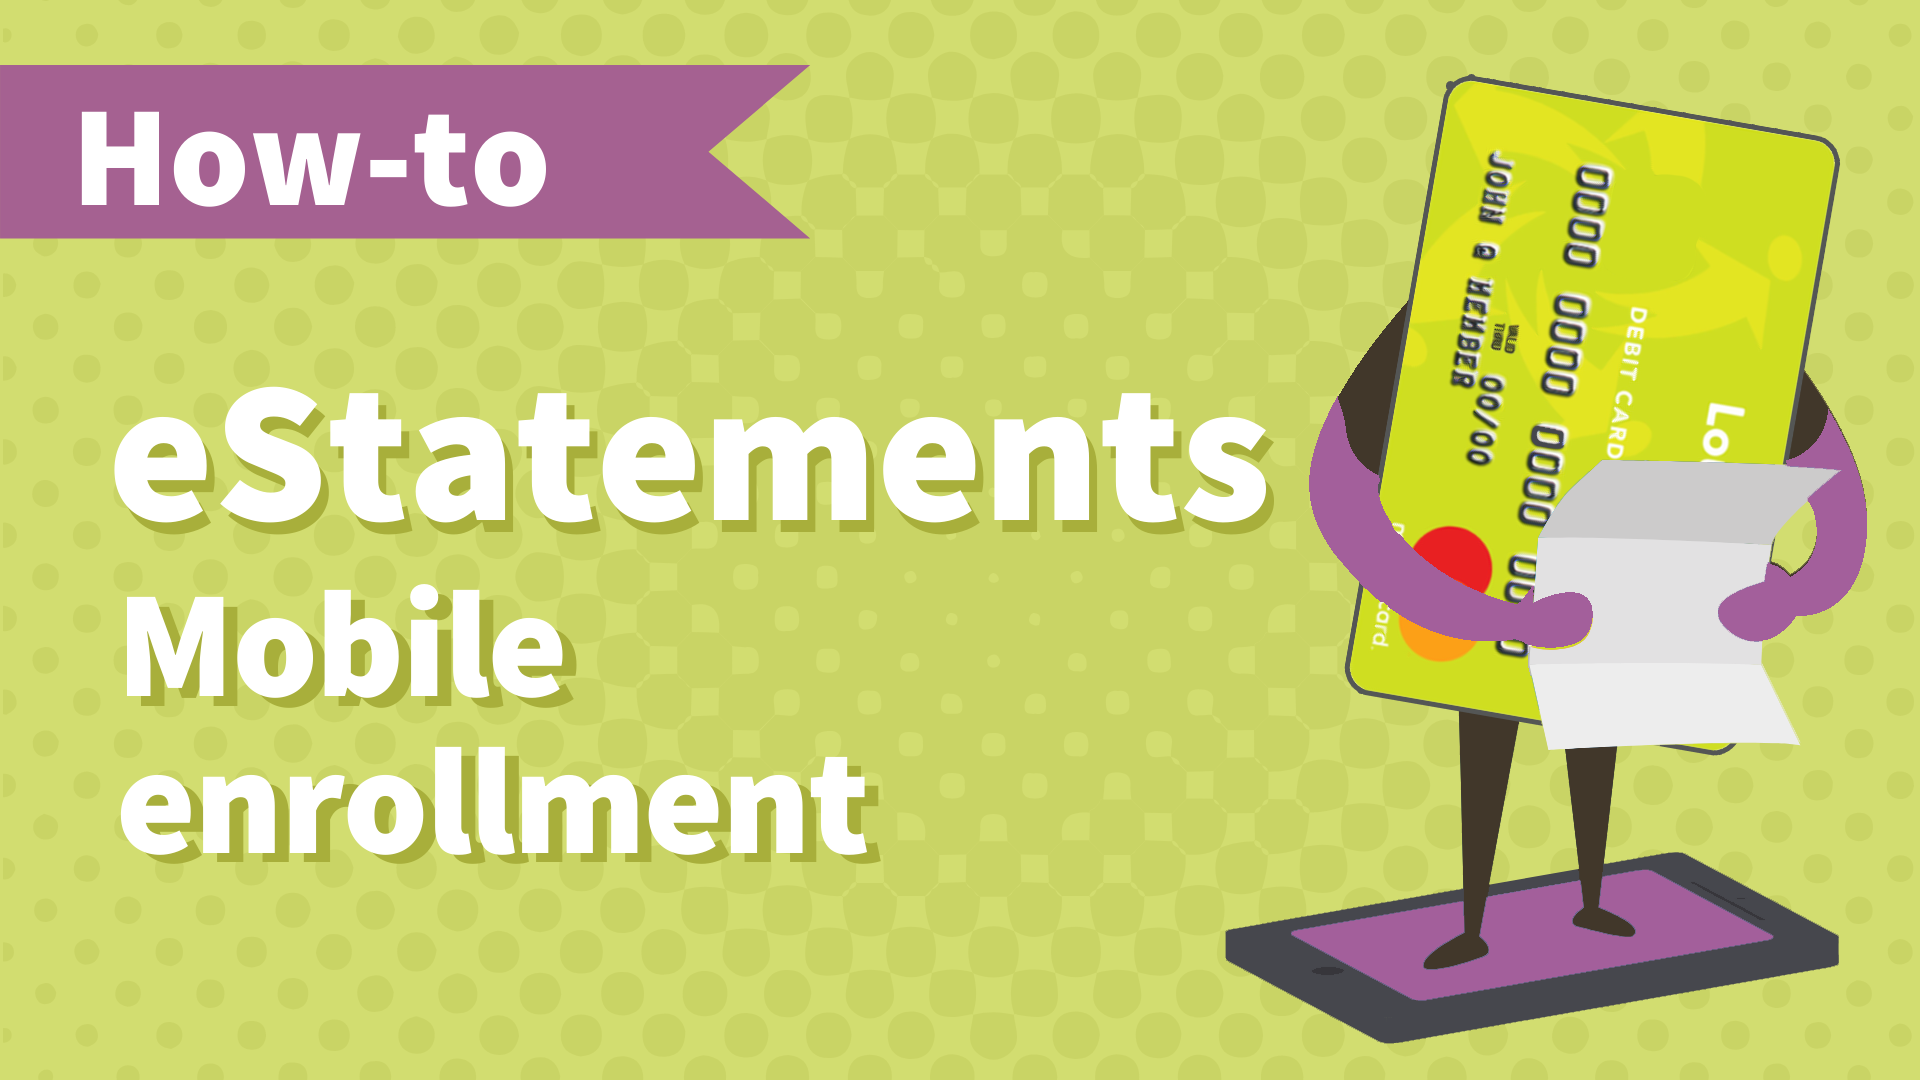 Tutorial_eStatement Enrollment_FINAL